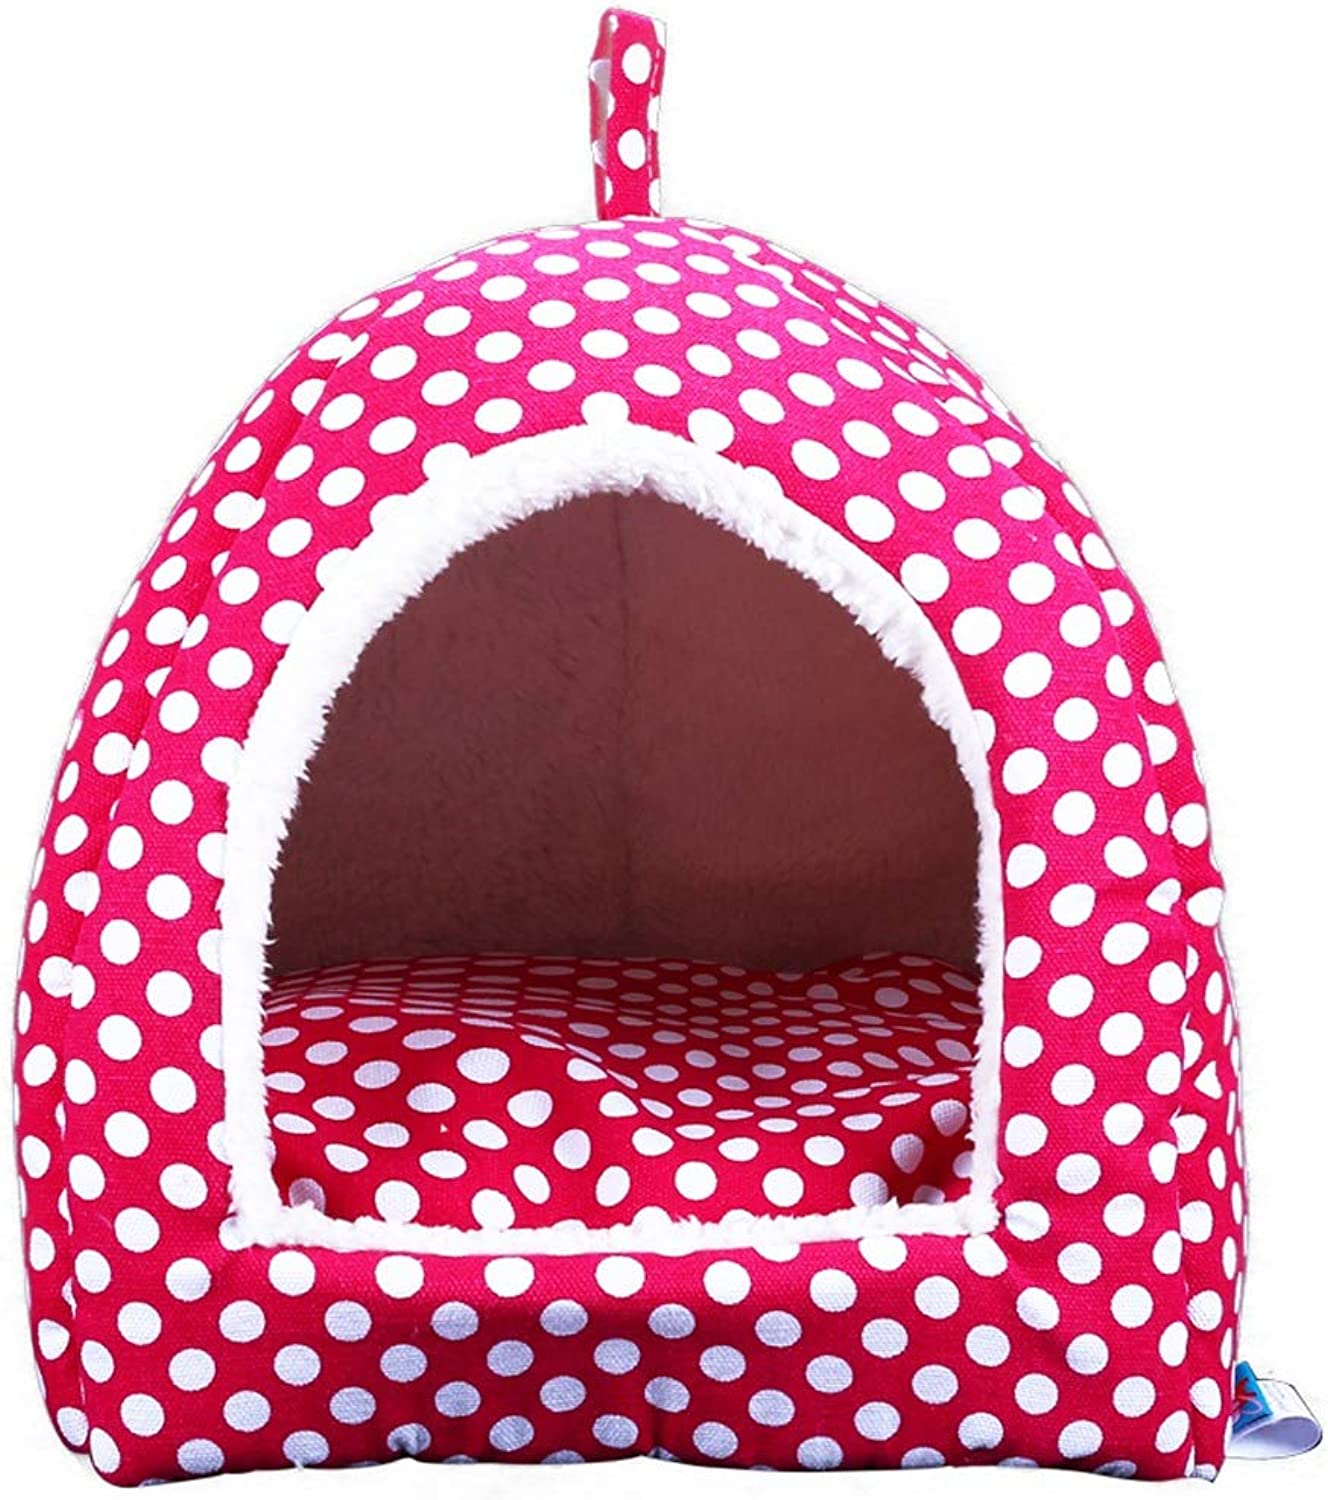 Kennel QIQIDEDIAN Pet Teddy Cat Litter Small Dog golden Hair Large Dog Pet Puppy Daily Necessities Yurt Nest (color   pink Red, Size   L 45  45  41cm)